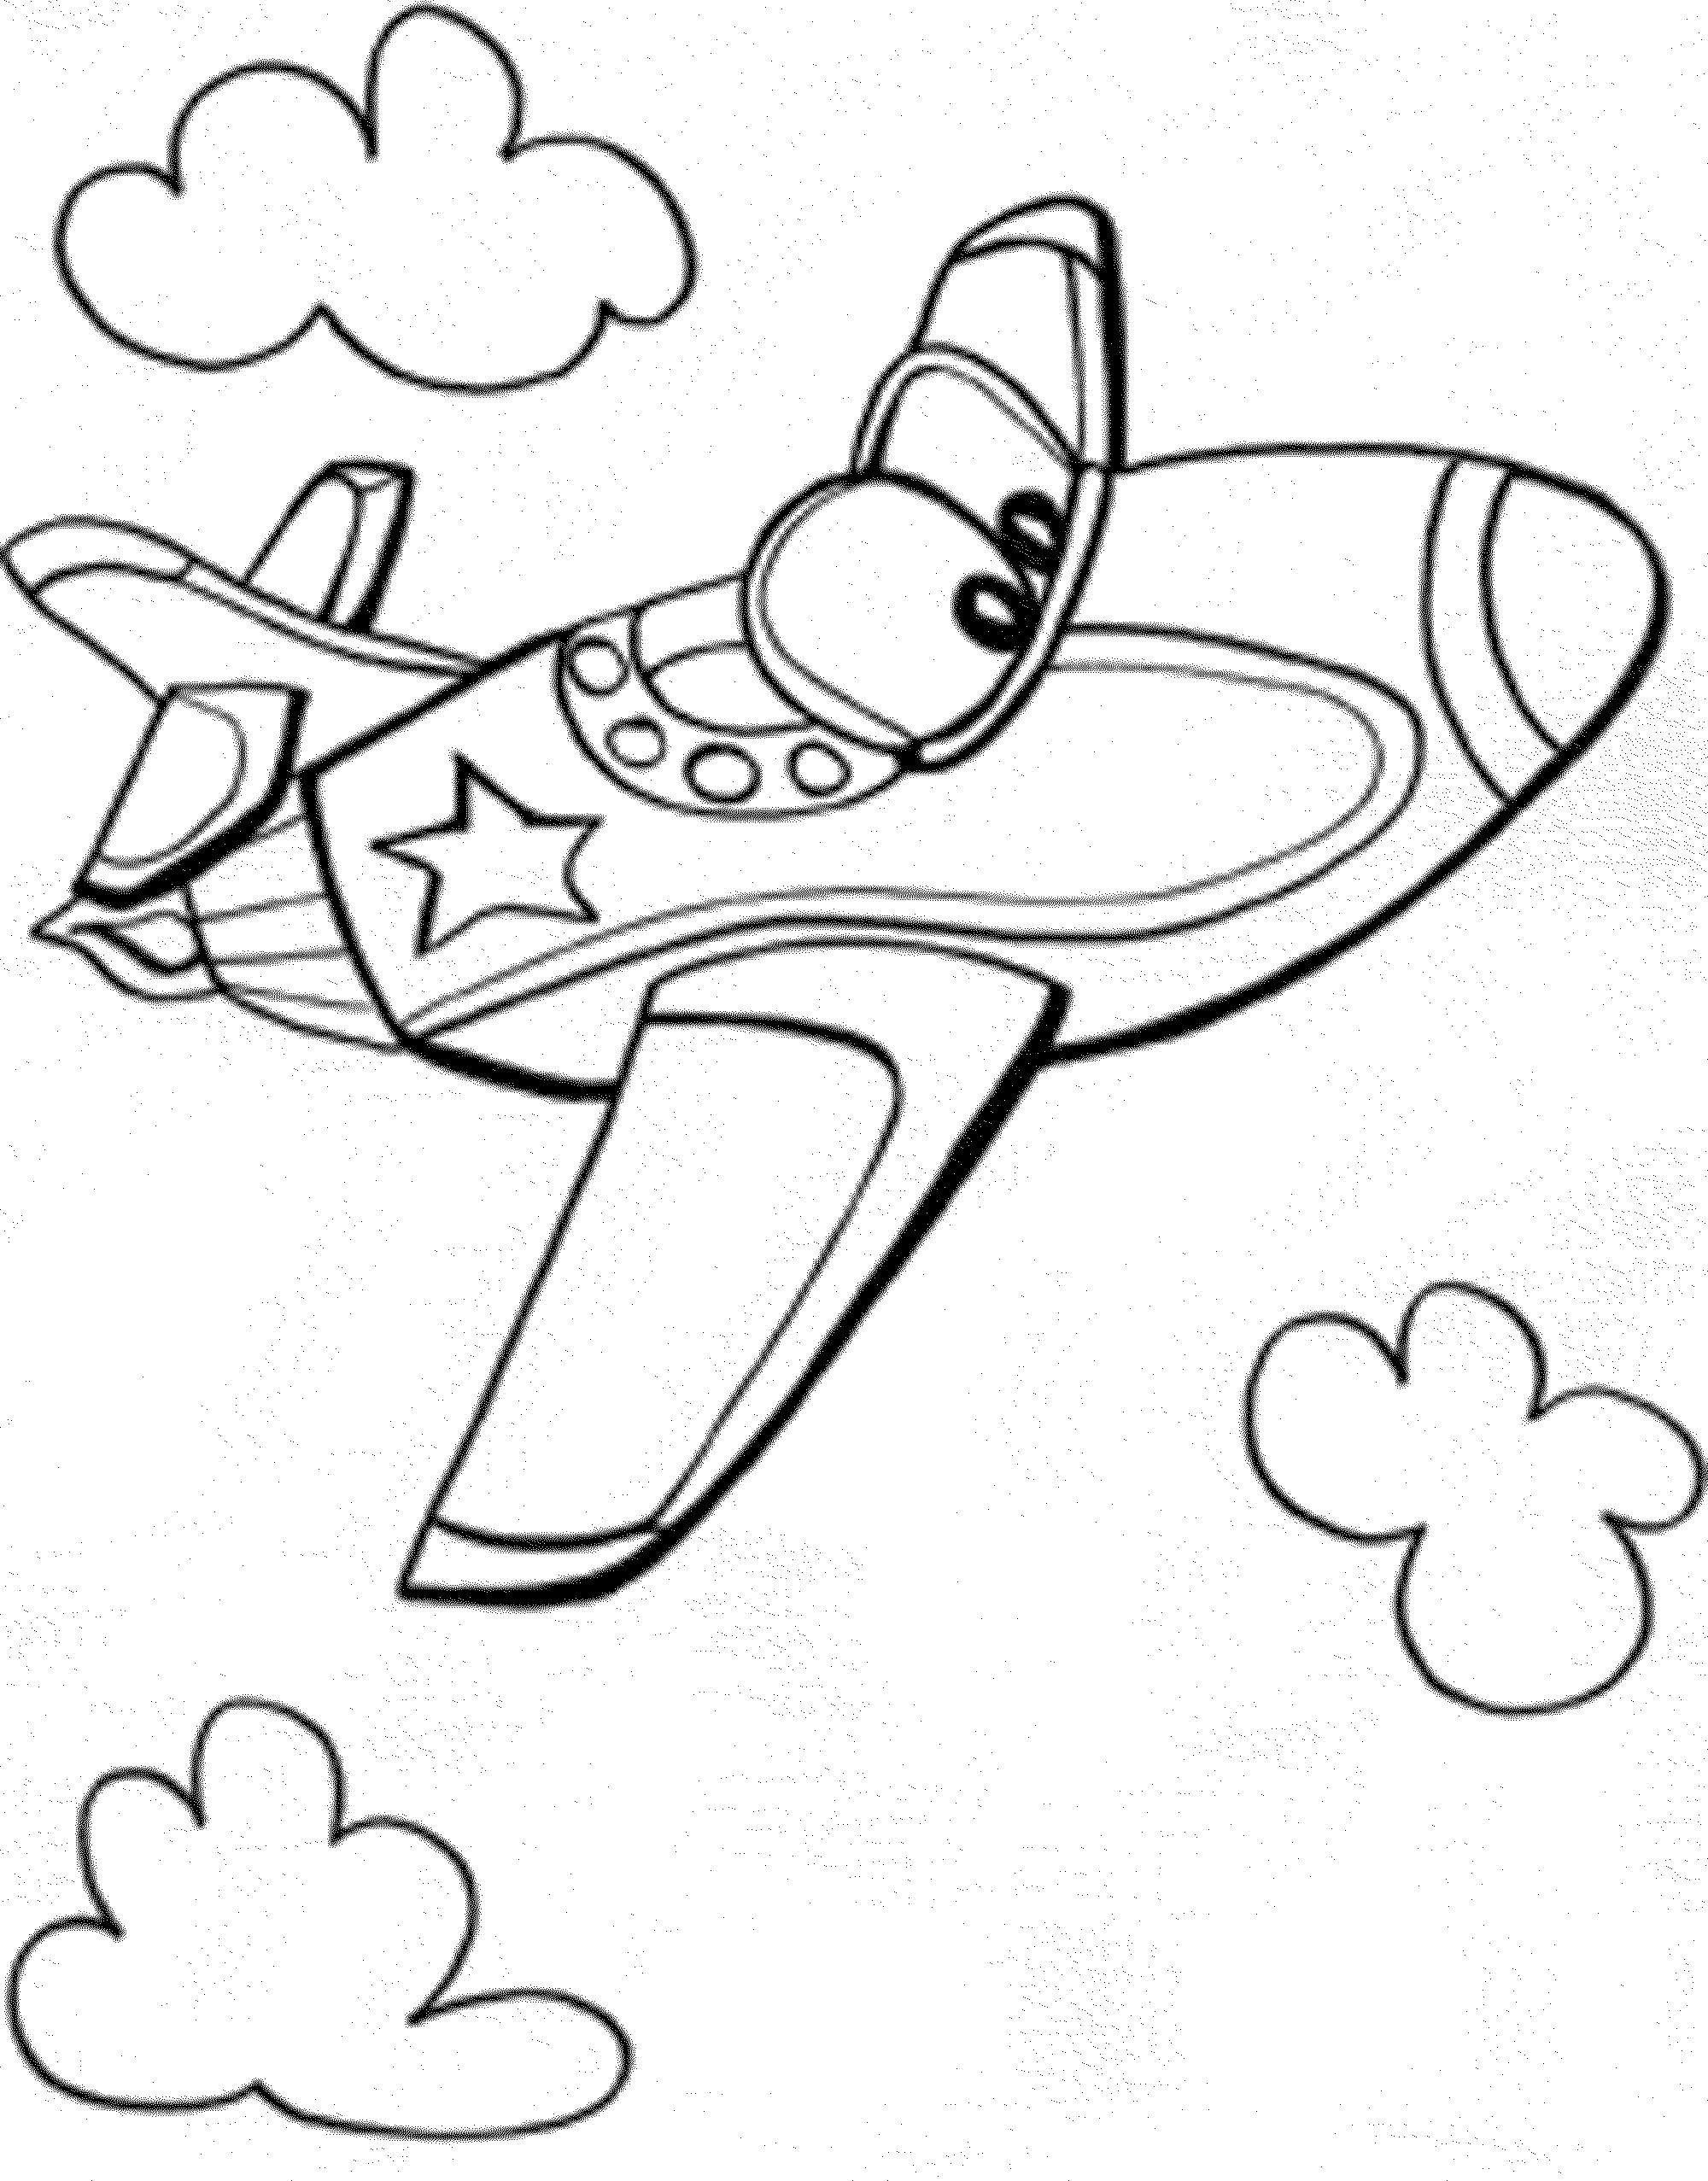 Coloring Pages For Pre Kindergarten : Print download the sophisticated transportation of